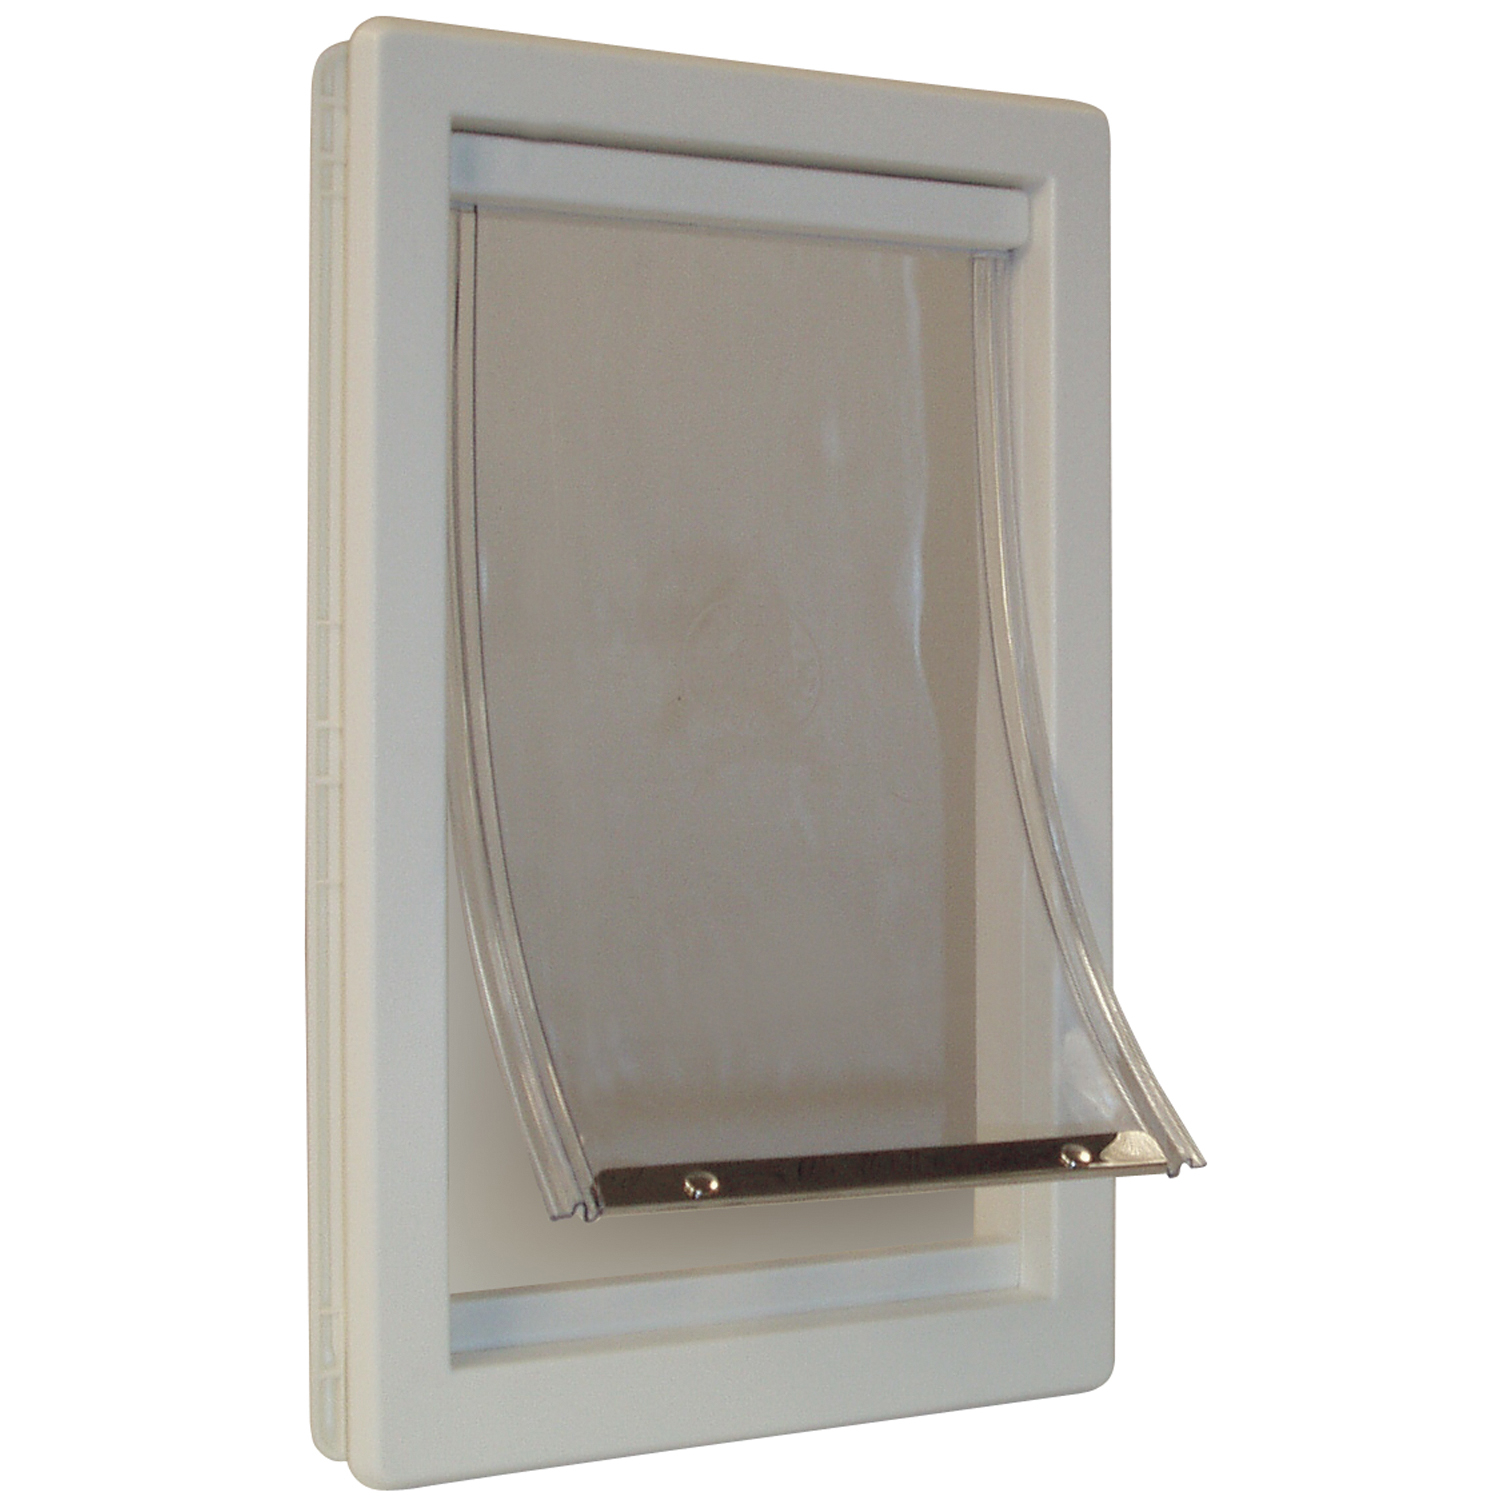 "Ideal Pet Products PPDM 9"" X 14-13/16"" Medium Thermoplastic Pet Door"